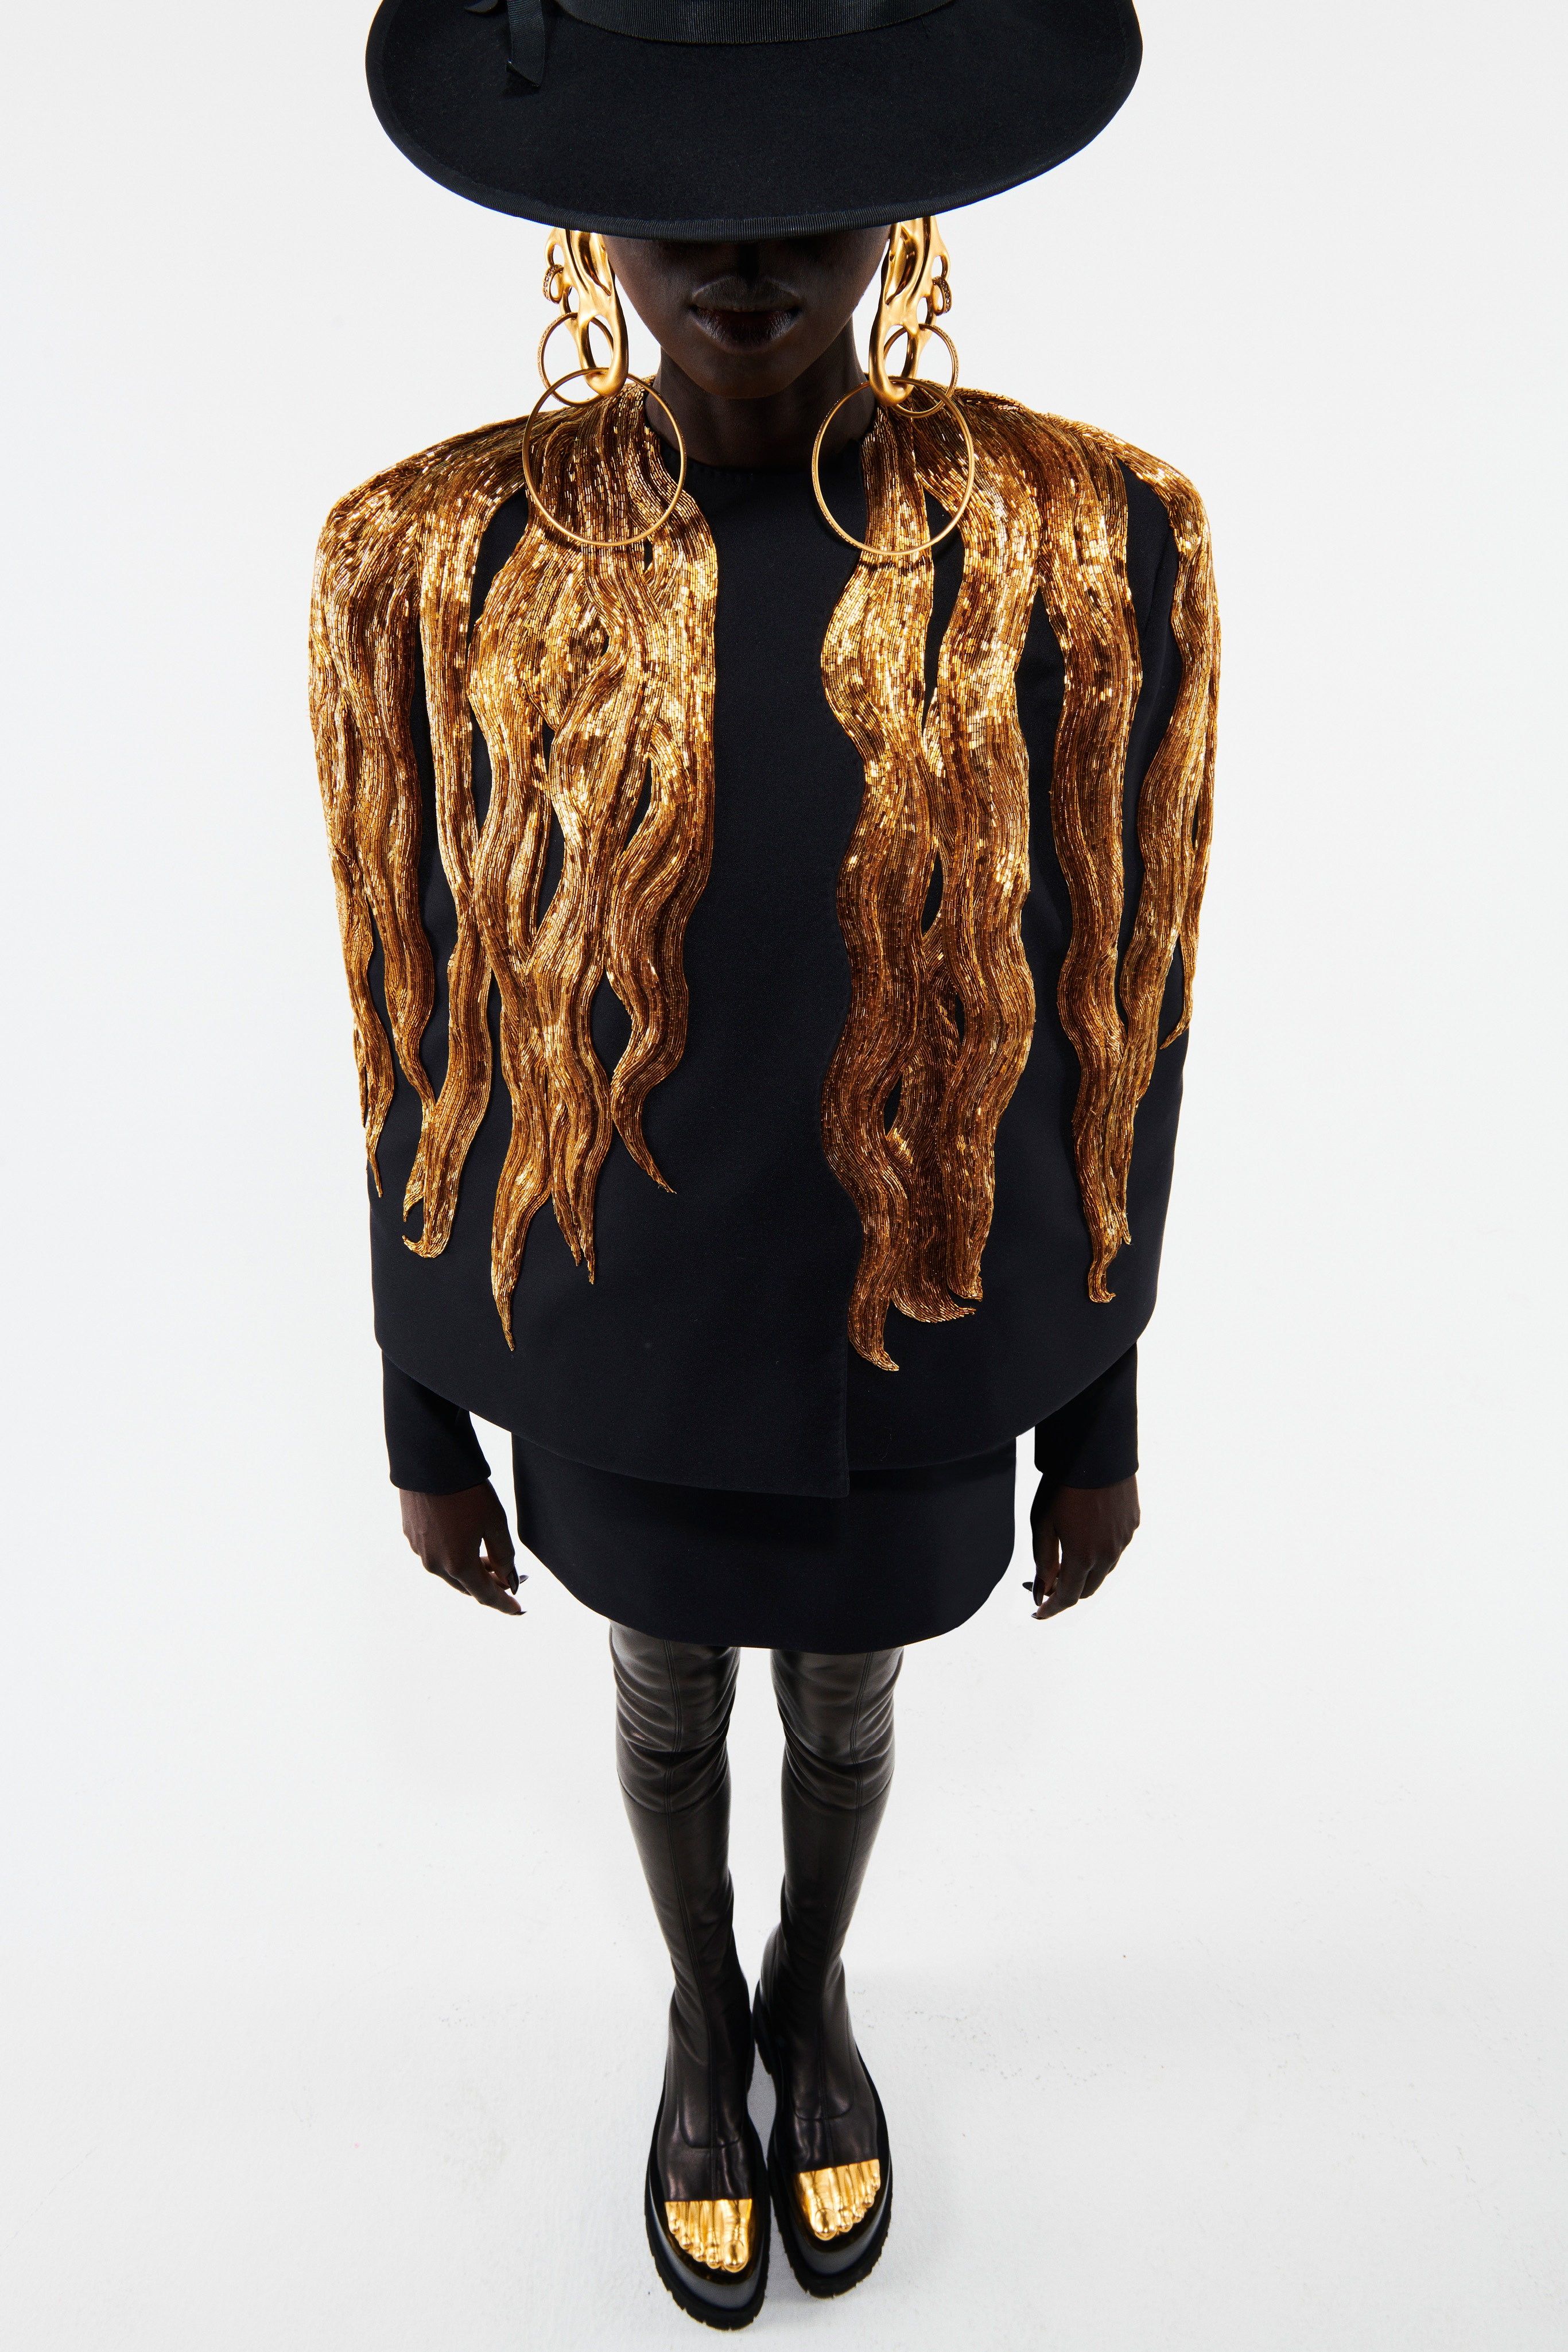 Schiaparelli Spring 2021 Couture. A lady wearing a black dress and jacket with gold embroidery on the jacket.